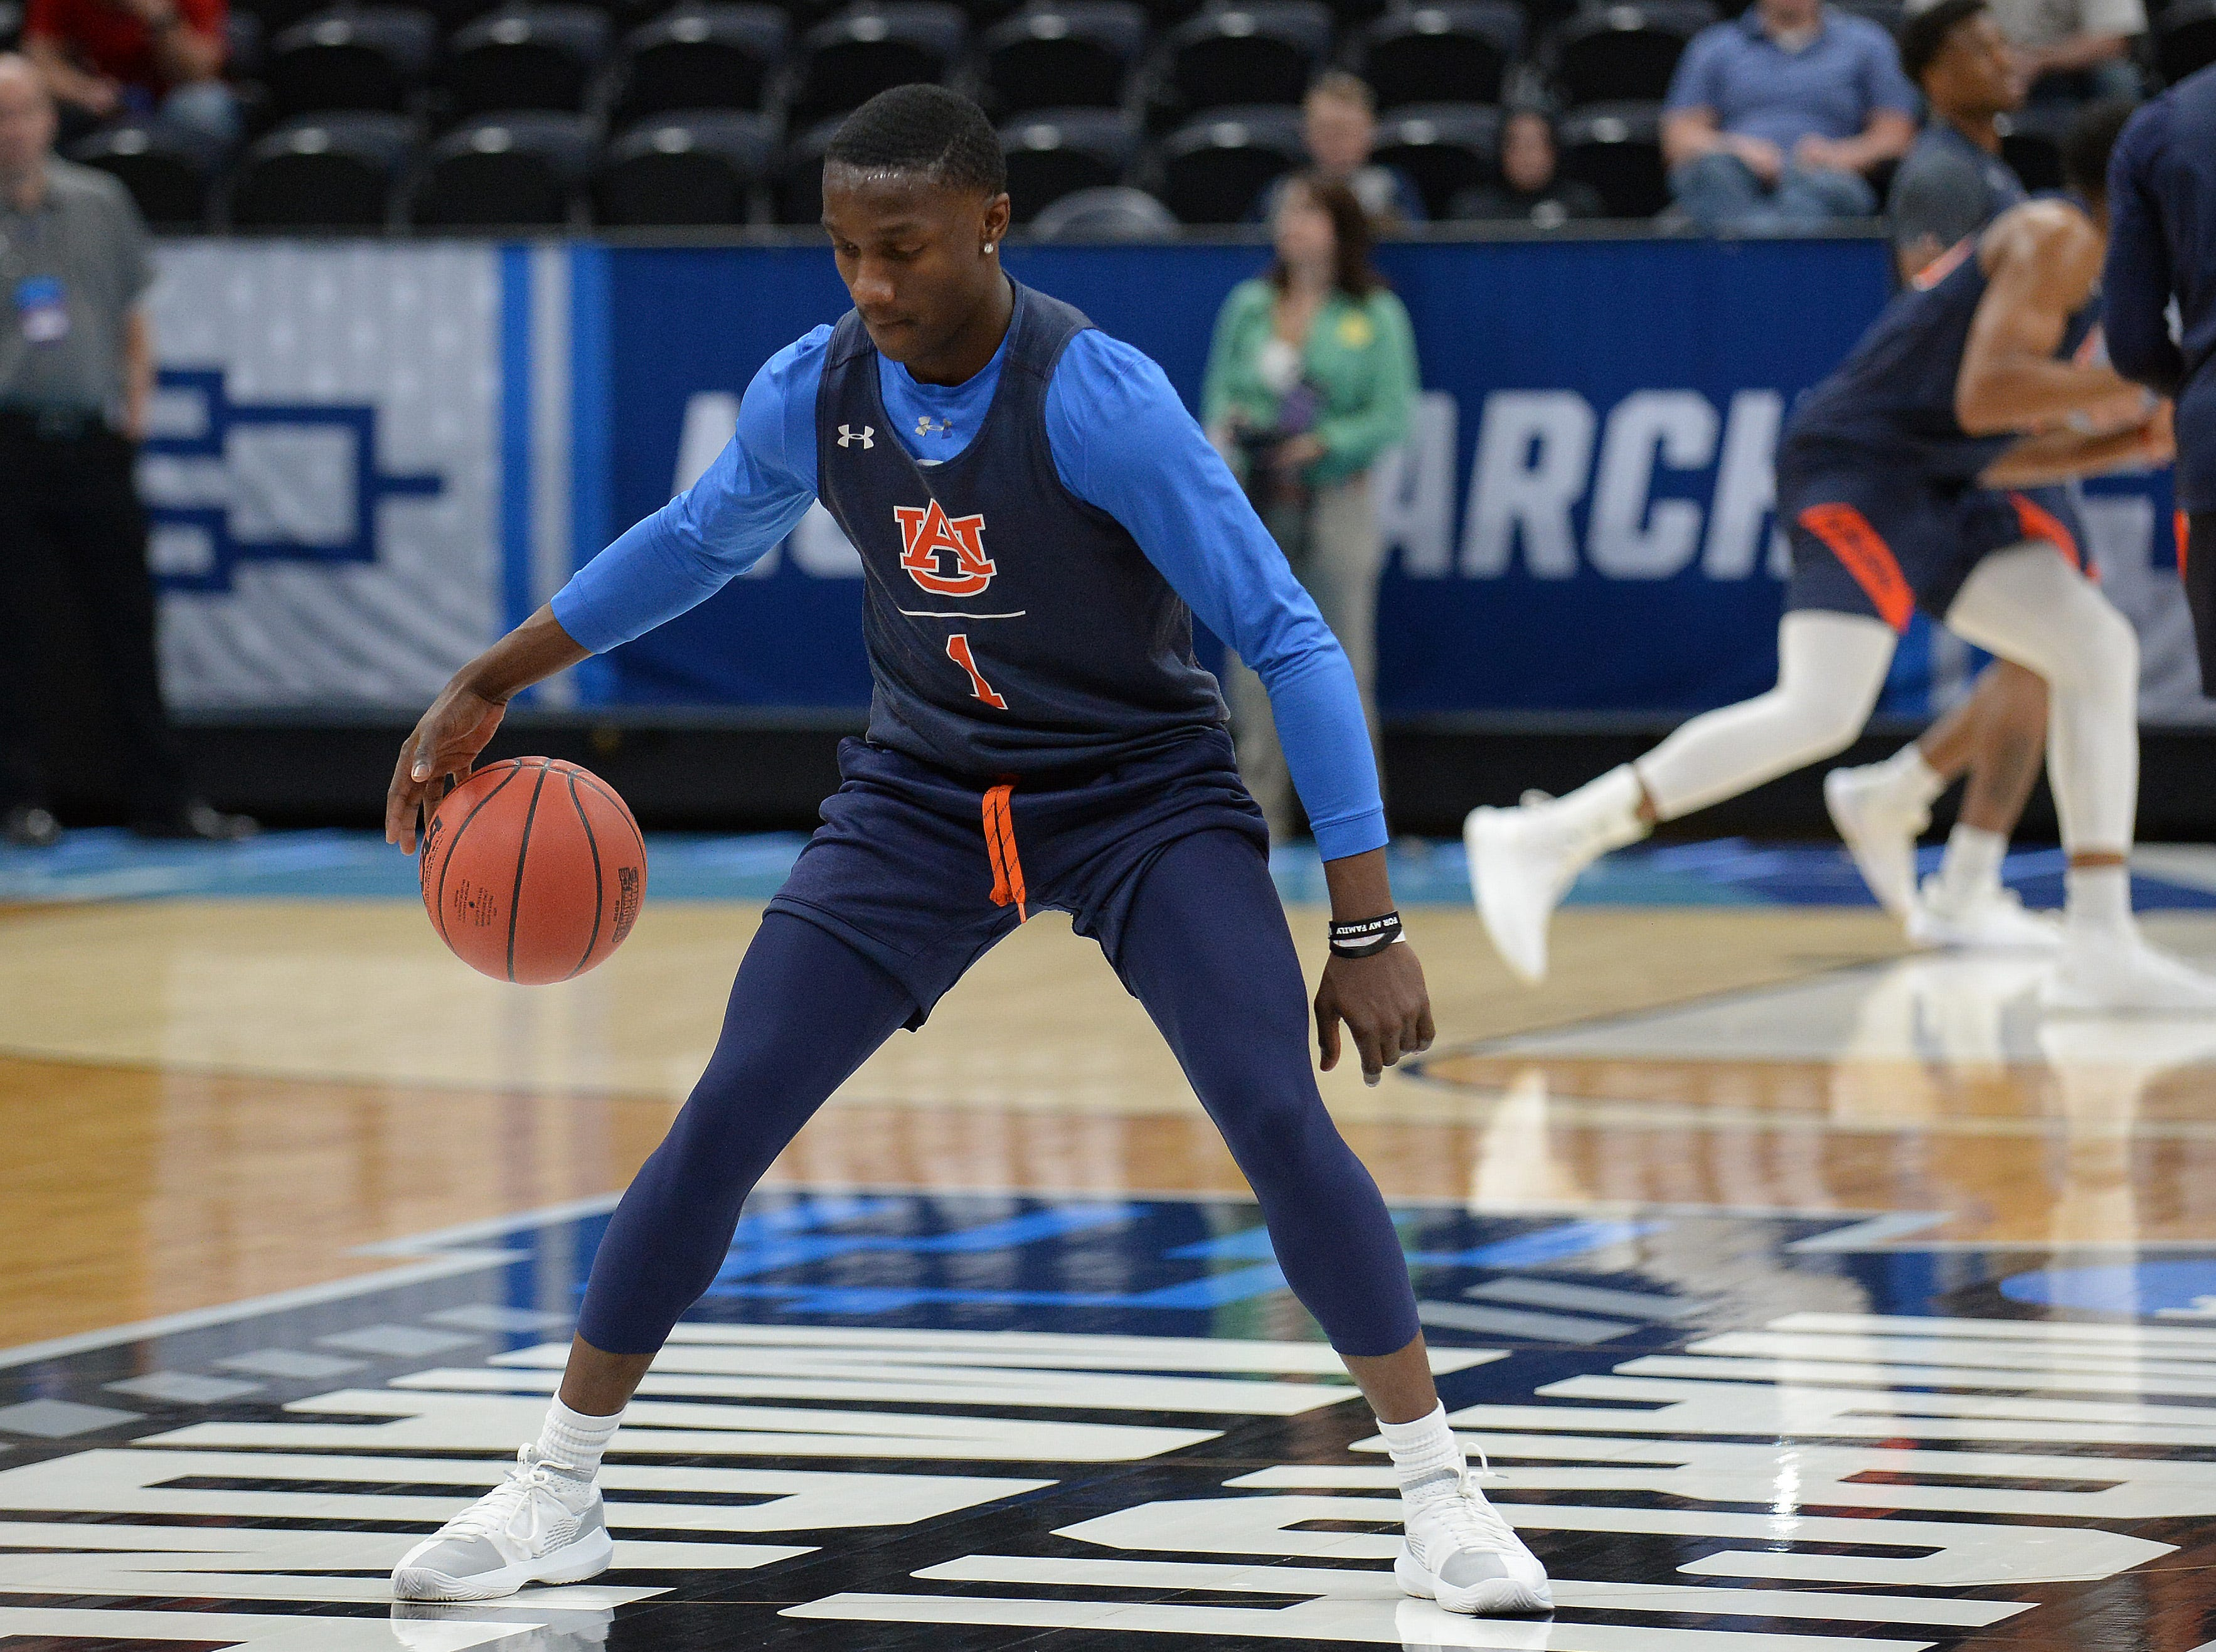 March 20, 2019; Salt Lake City, UT, USA; Auburn Tigers guard Jared Harper (1) during practice before the first round of the 2019 NCAA Tournament at Vivint Smart Home Arena. Mandatory Credit: Gary A. Vasquez-USA TODAY Sports